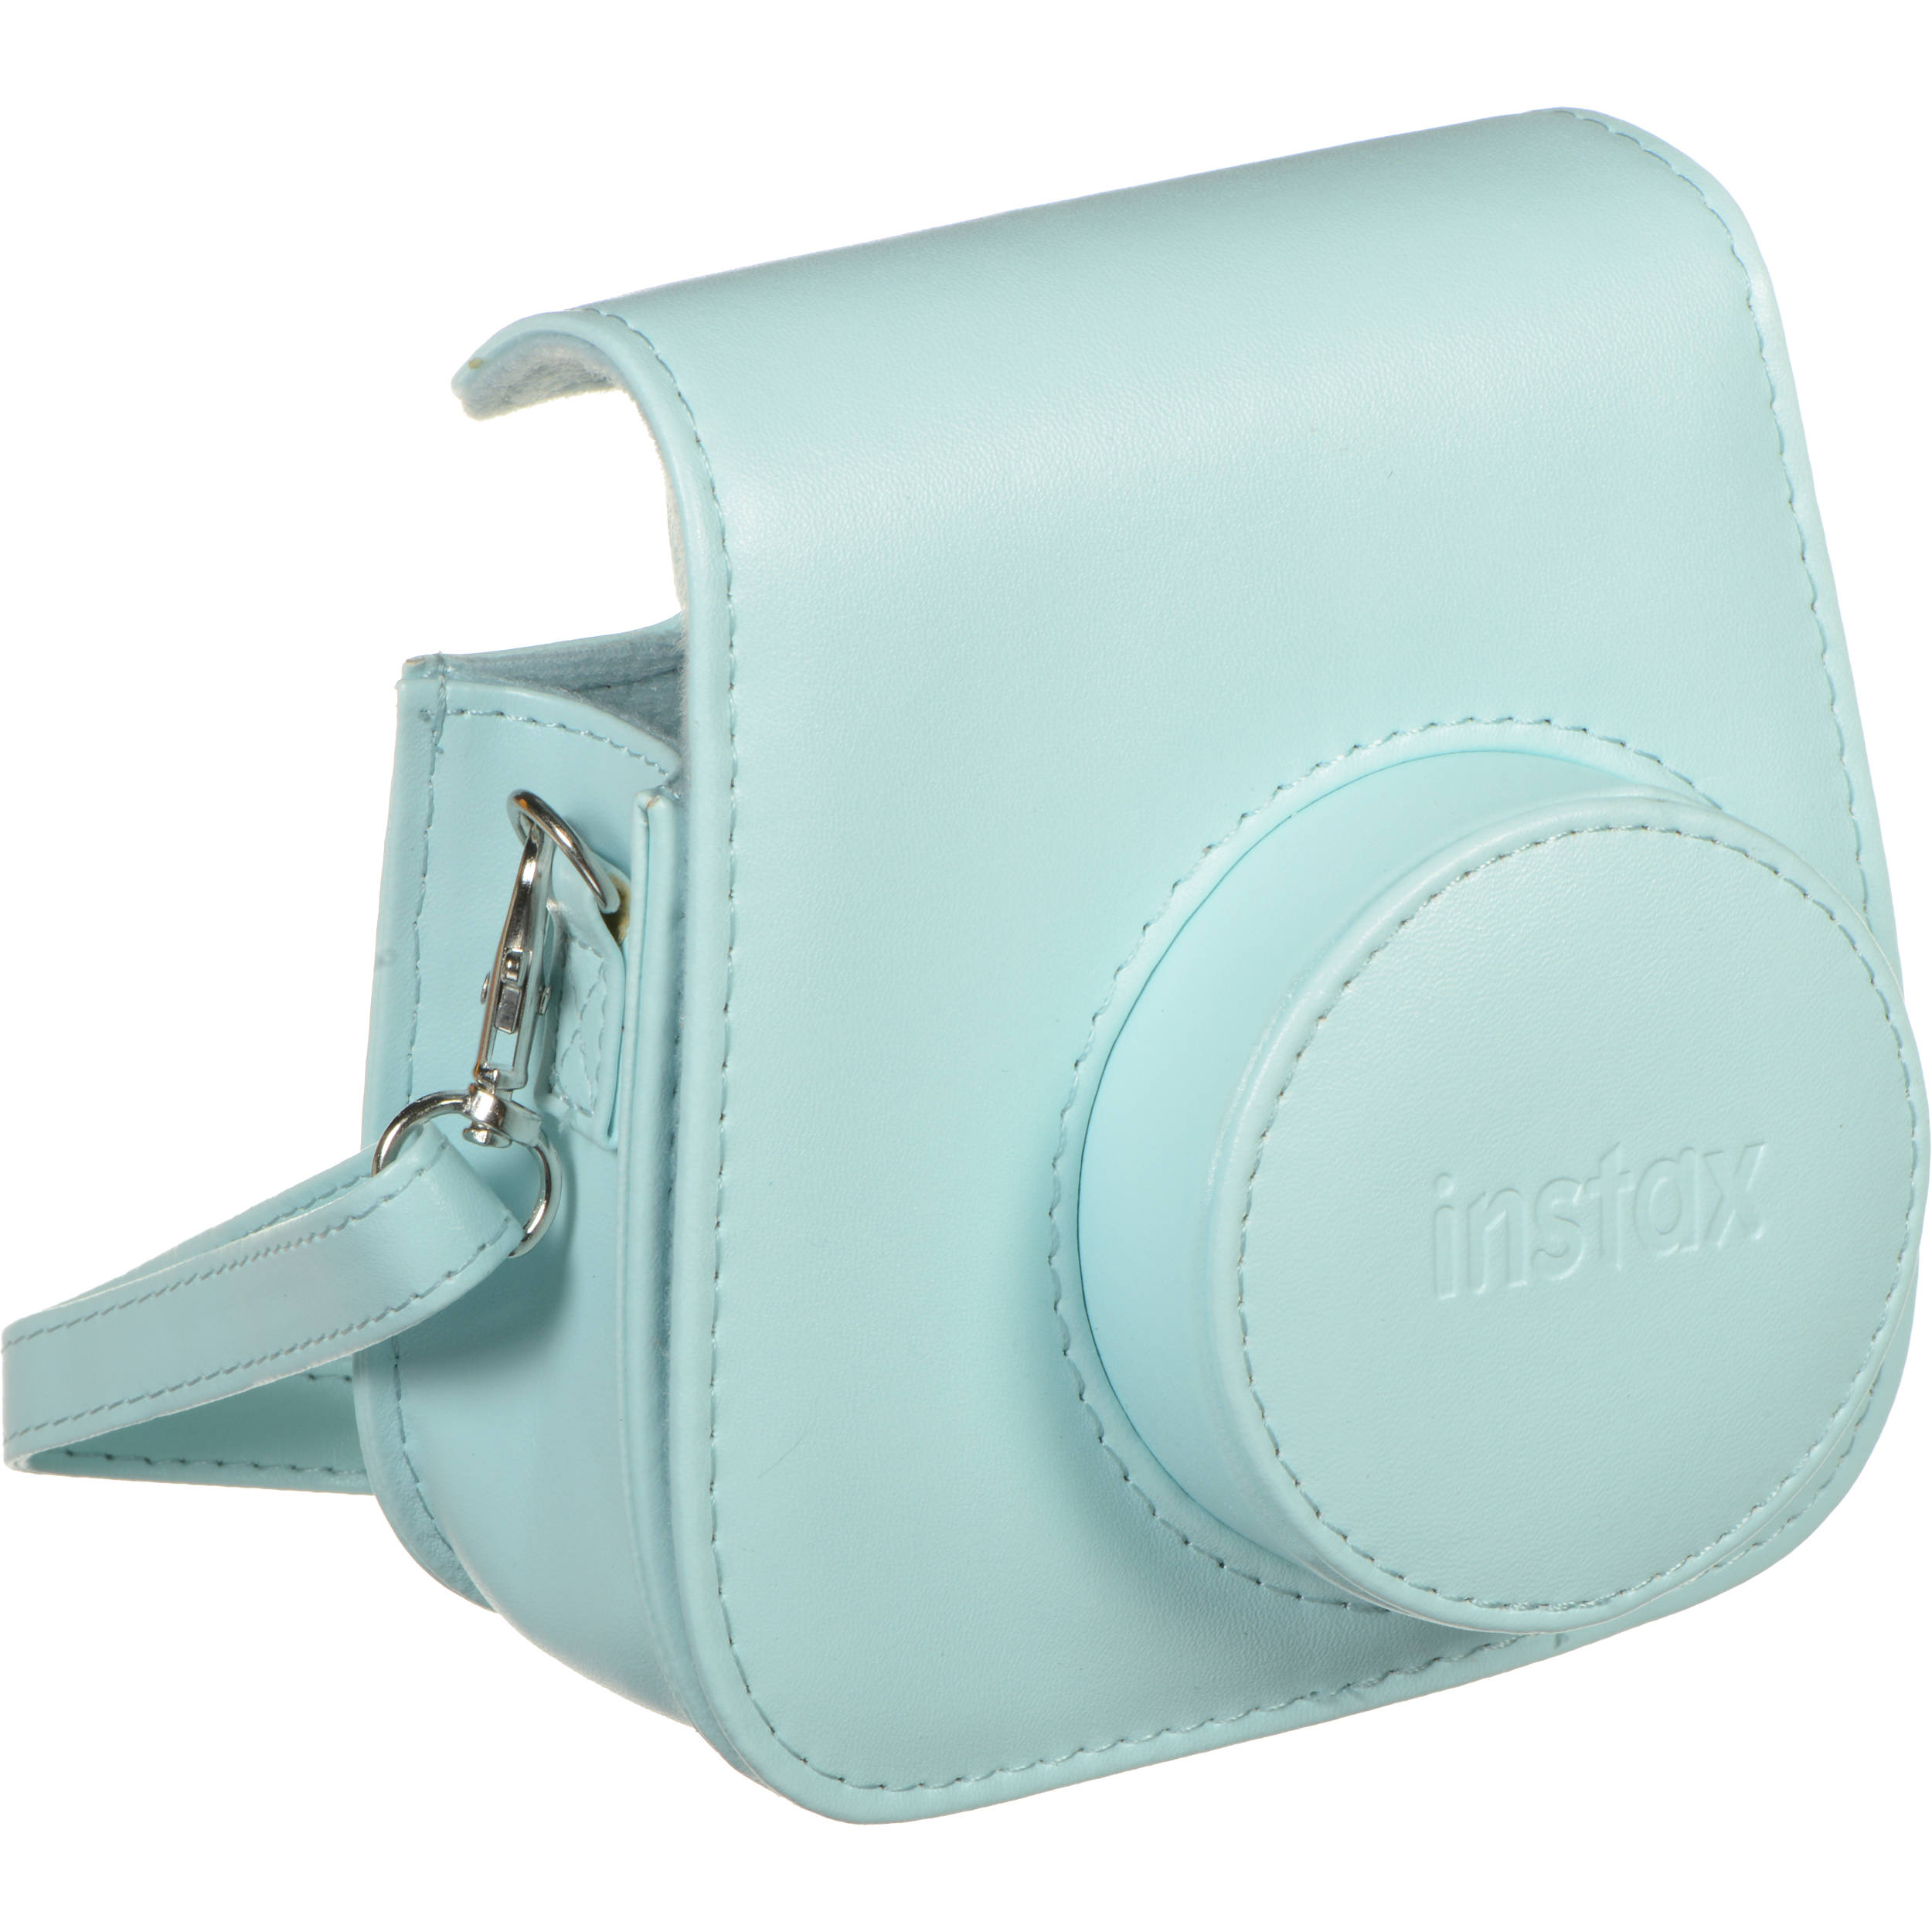 Fujifilm groovy camera case for instax mini 9 600018144 b h for Housse instax mini 9